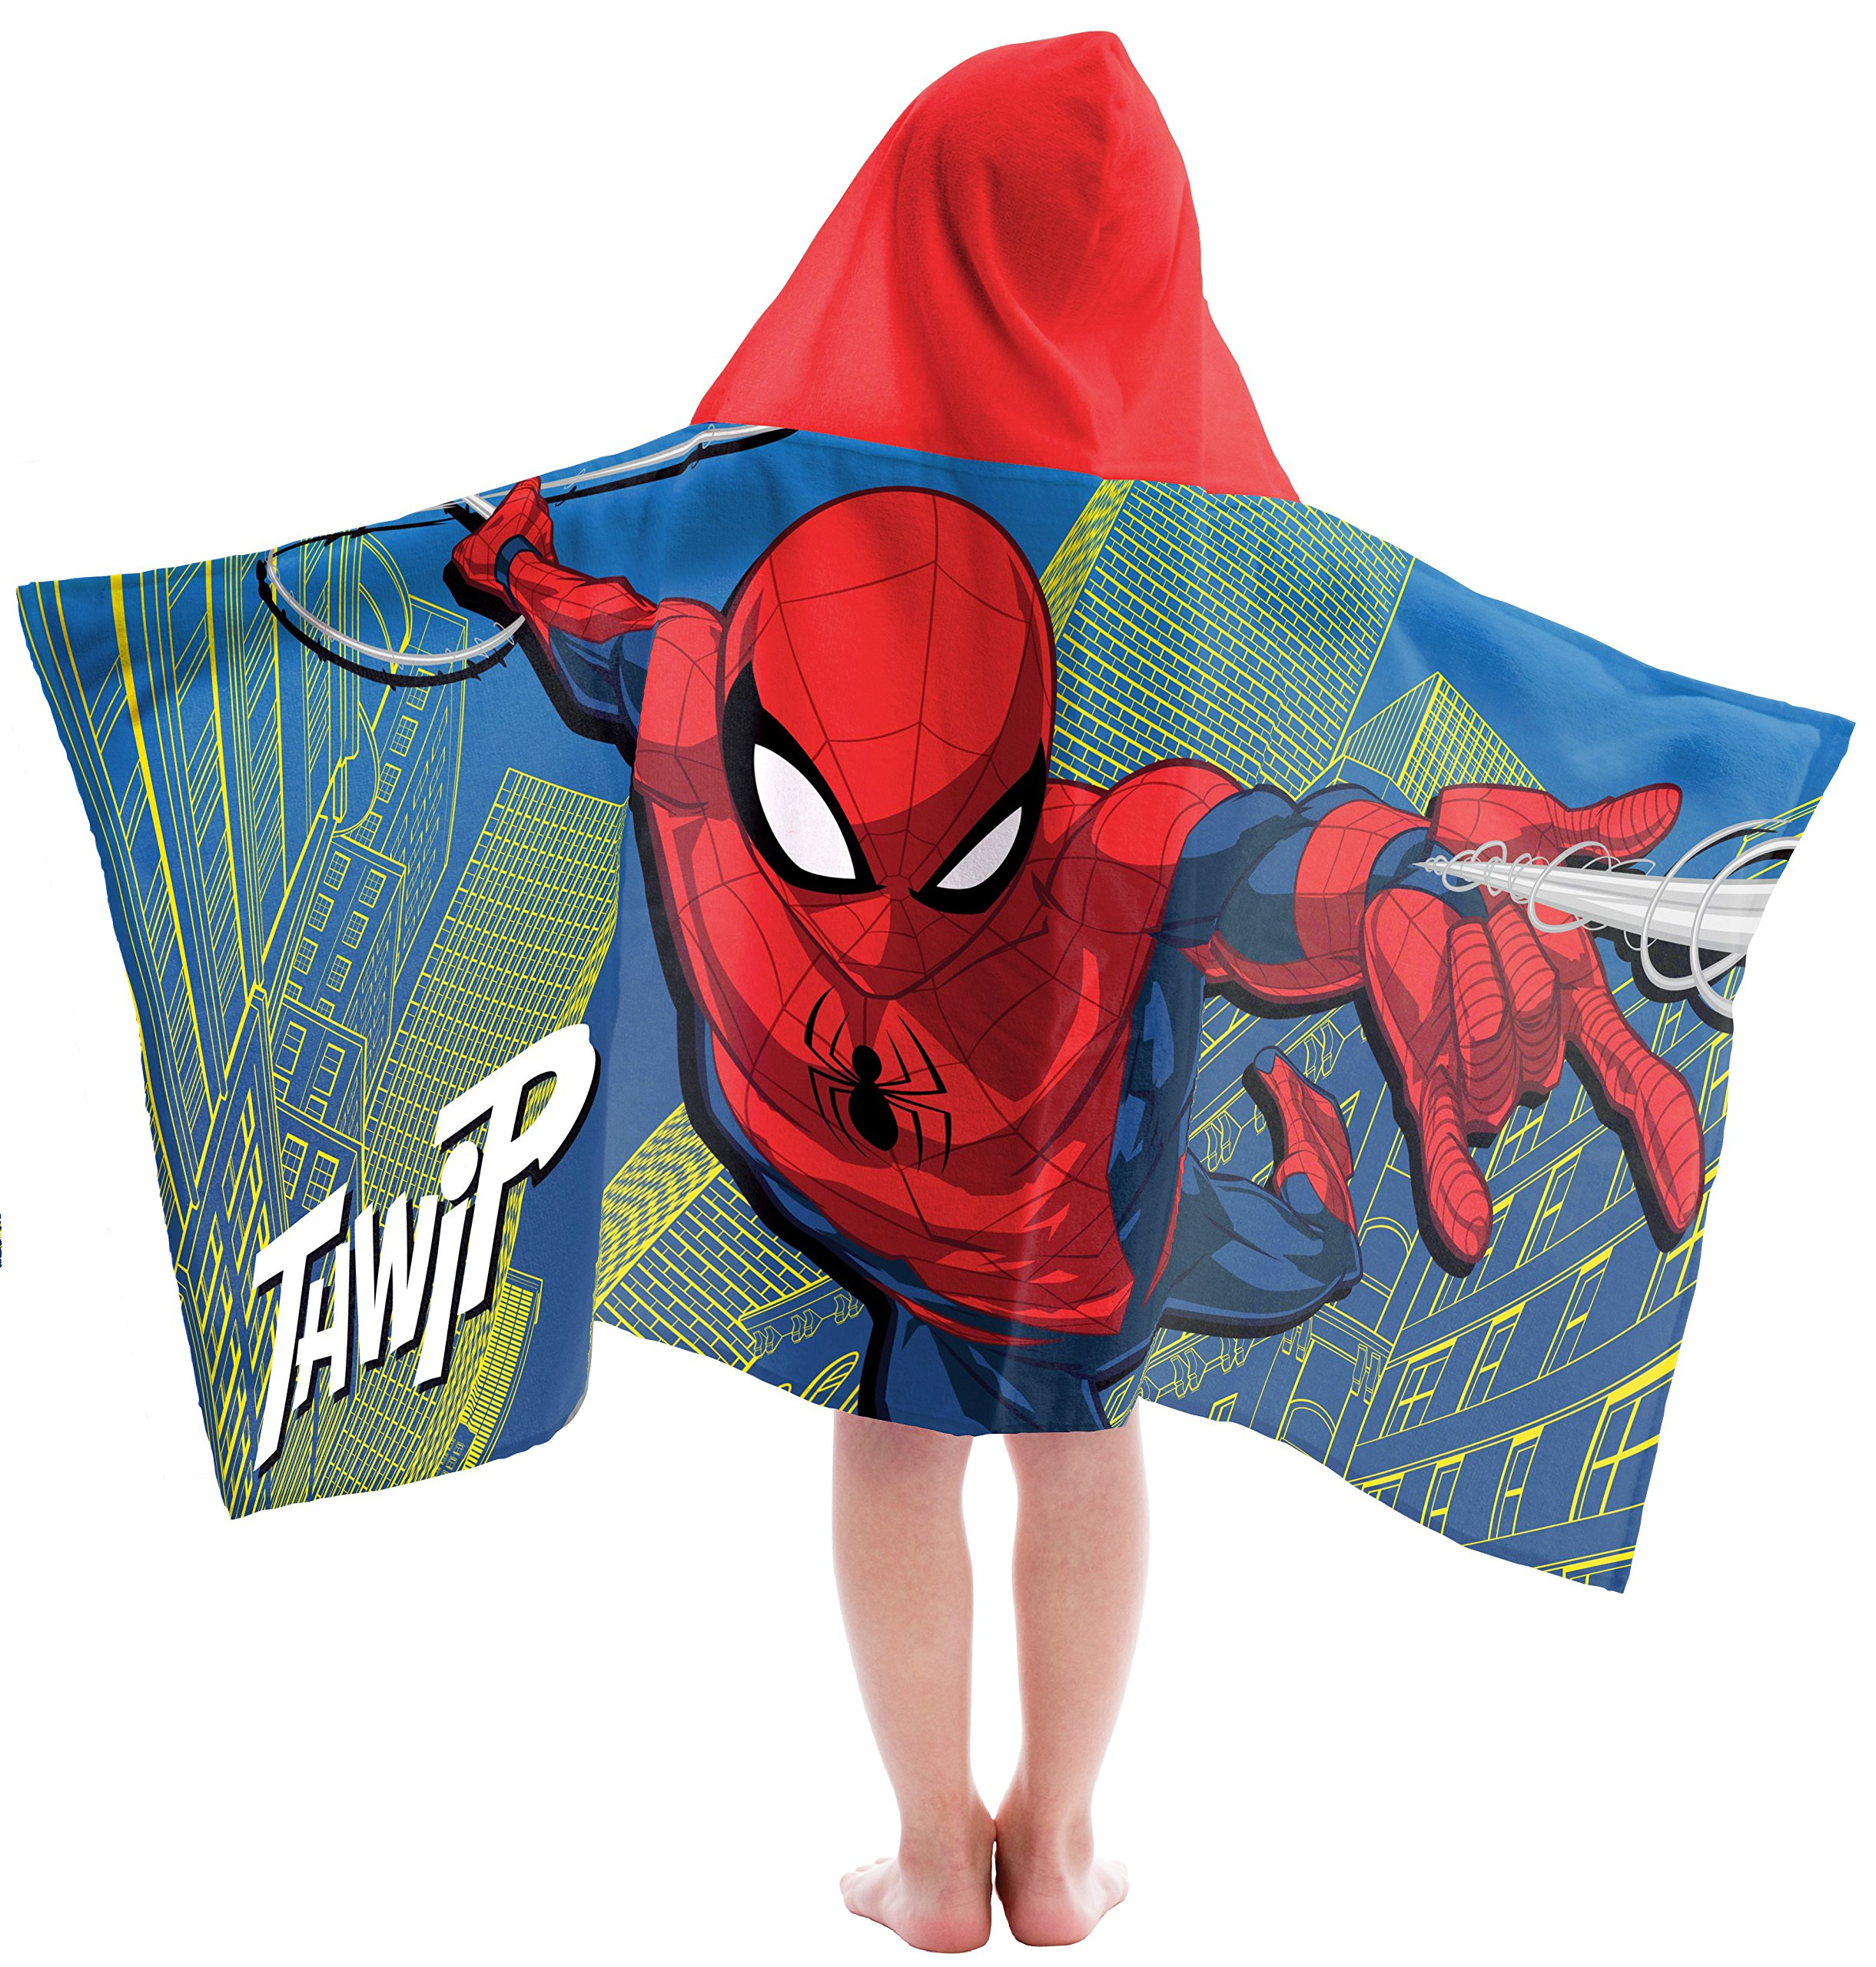 Marvel Spiderman Thwip Super Soft & Absorbent Kids Bath/Pool/Beach Hooded Towel, Featuring Spiderman - Fade Resistant Cotton Terry Towel, Measures 28 inch x 58 inch (Official Marvel Product)